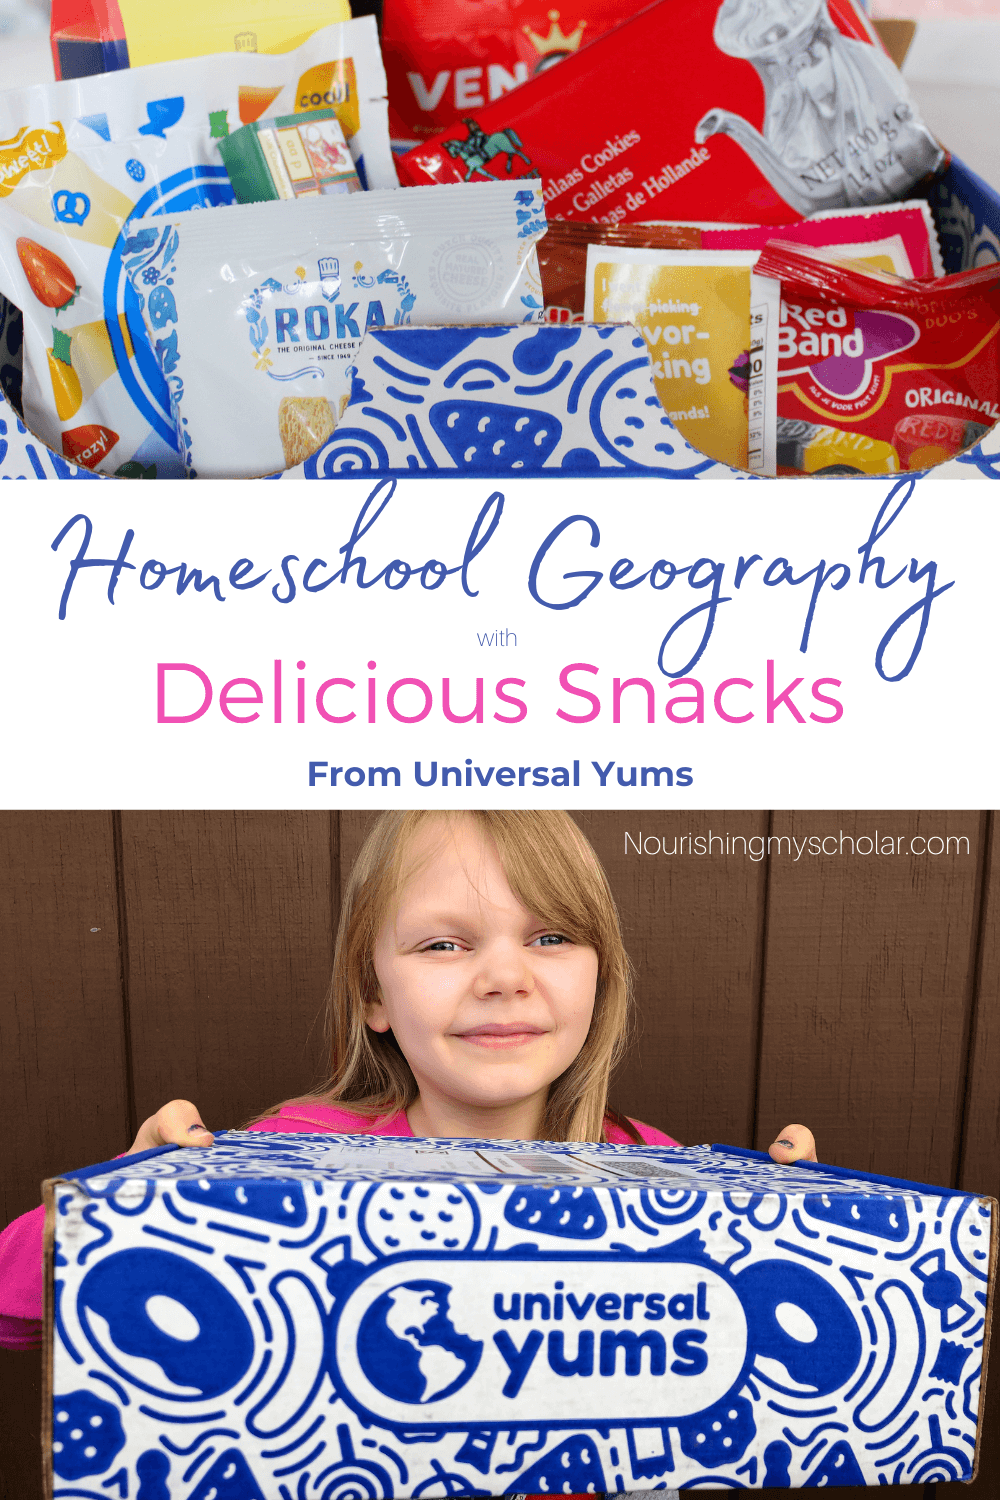 Homeschool Geography with Delicious Snacks: Are you ready to make your homeschool geography delicious with snacks from countries around the world? Today I'd like to share with you how we took our geography from bland and boring to vibrant and delectable! #geography #geographyactivities #homeschoolgeography #homeschoolgeographywithdelicioussnacks #subscriptionbox #subscriptionboxforkids #universalyums